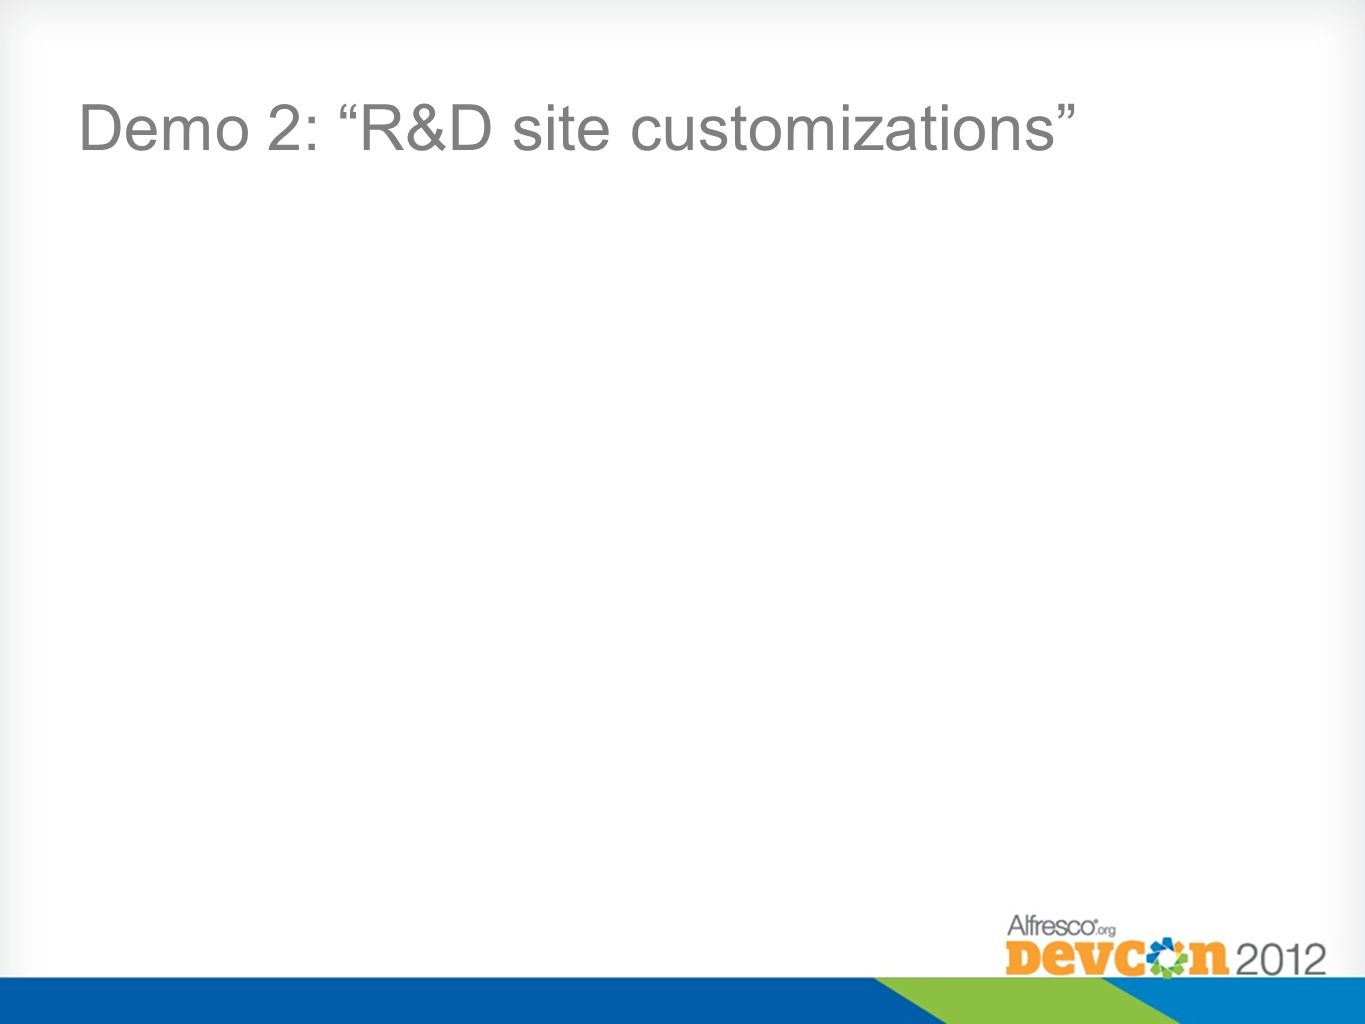 Demo 2: R&D site customizations